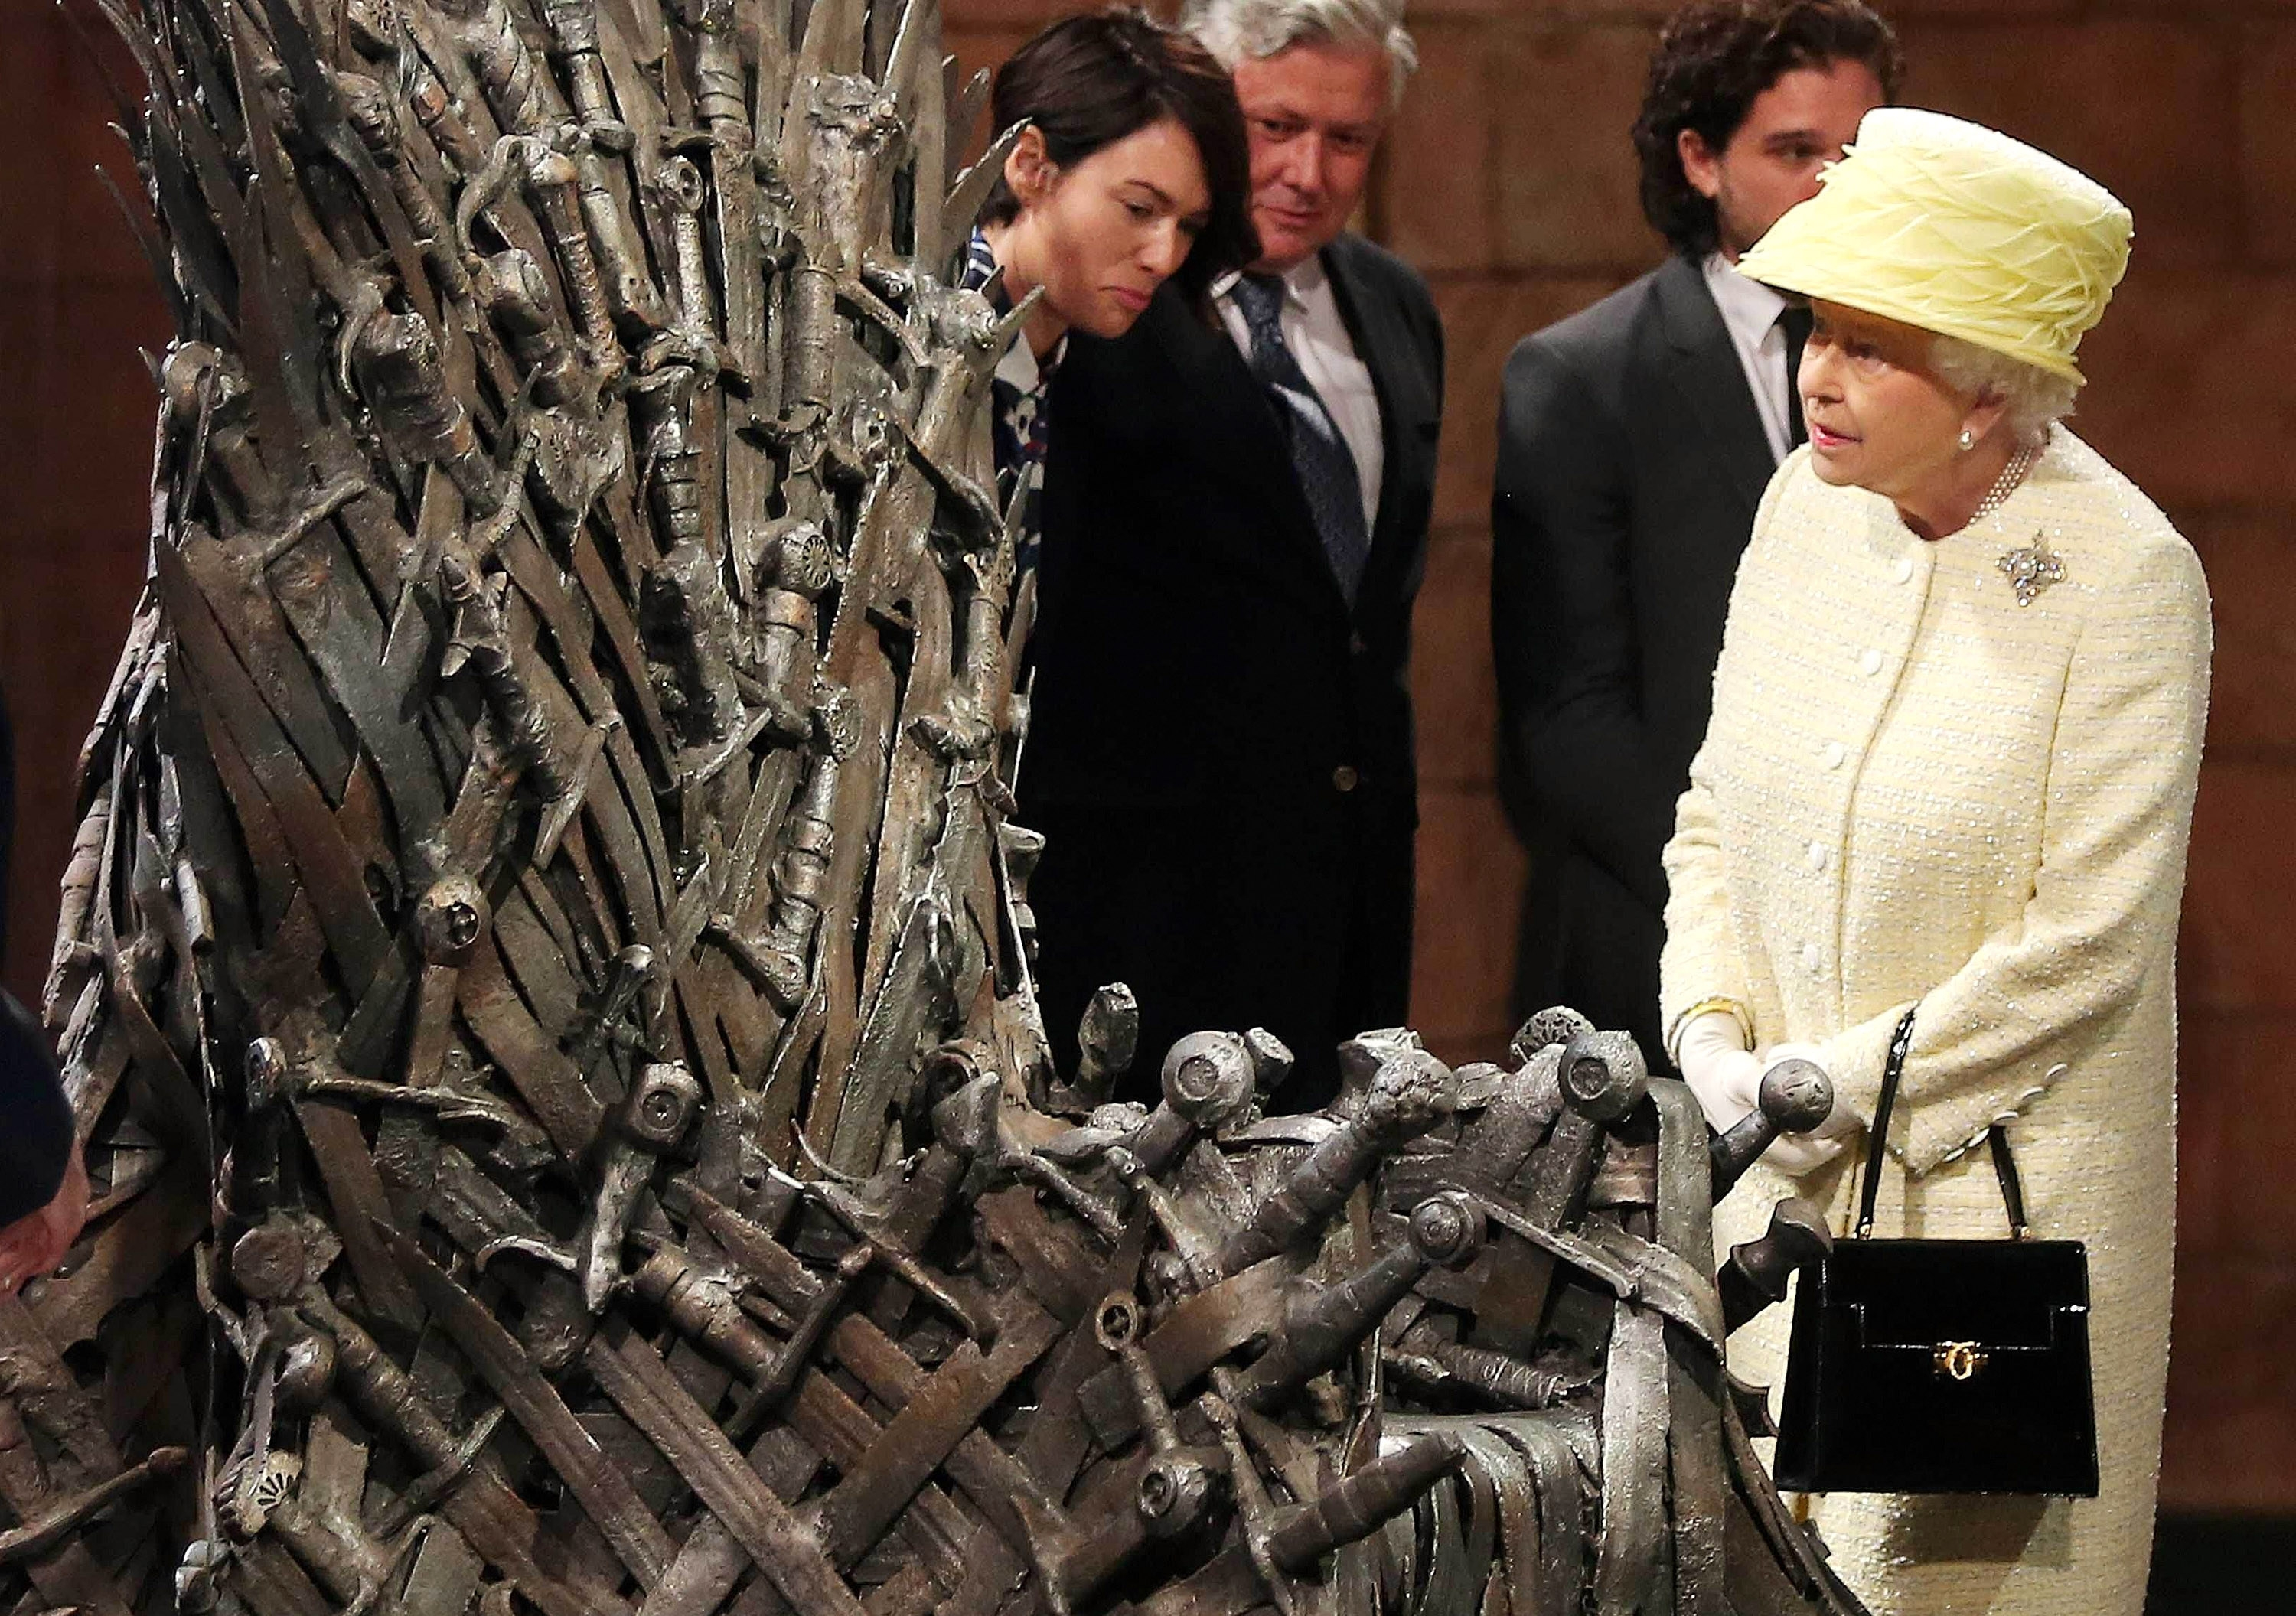 """Queen Elizabeth II meets cast members of the HBO series """"Game of Thrones"""" as she views the Iron Throne on the set of the show Tuesday in Belfast, Northern Ireland."""